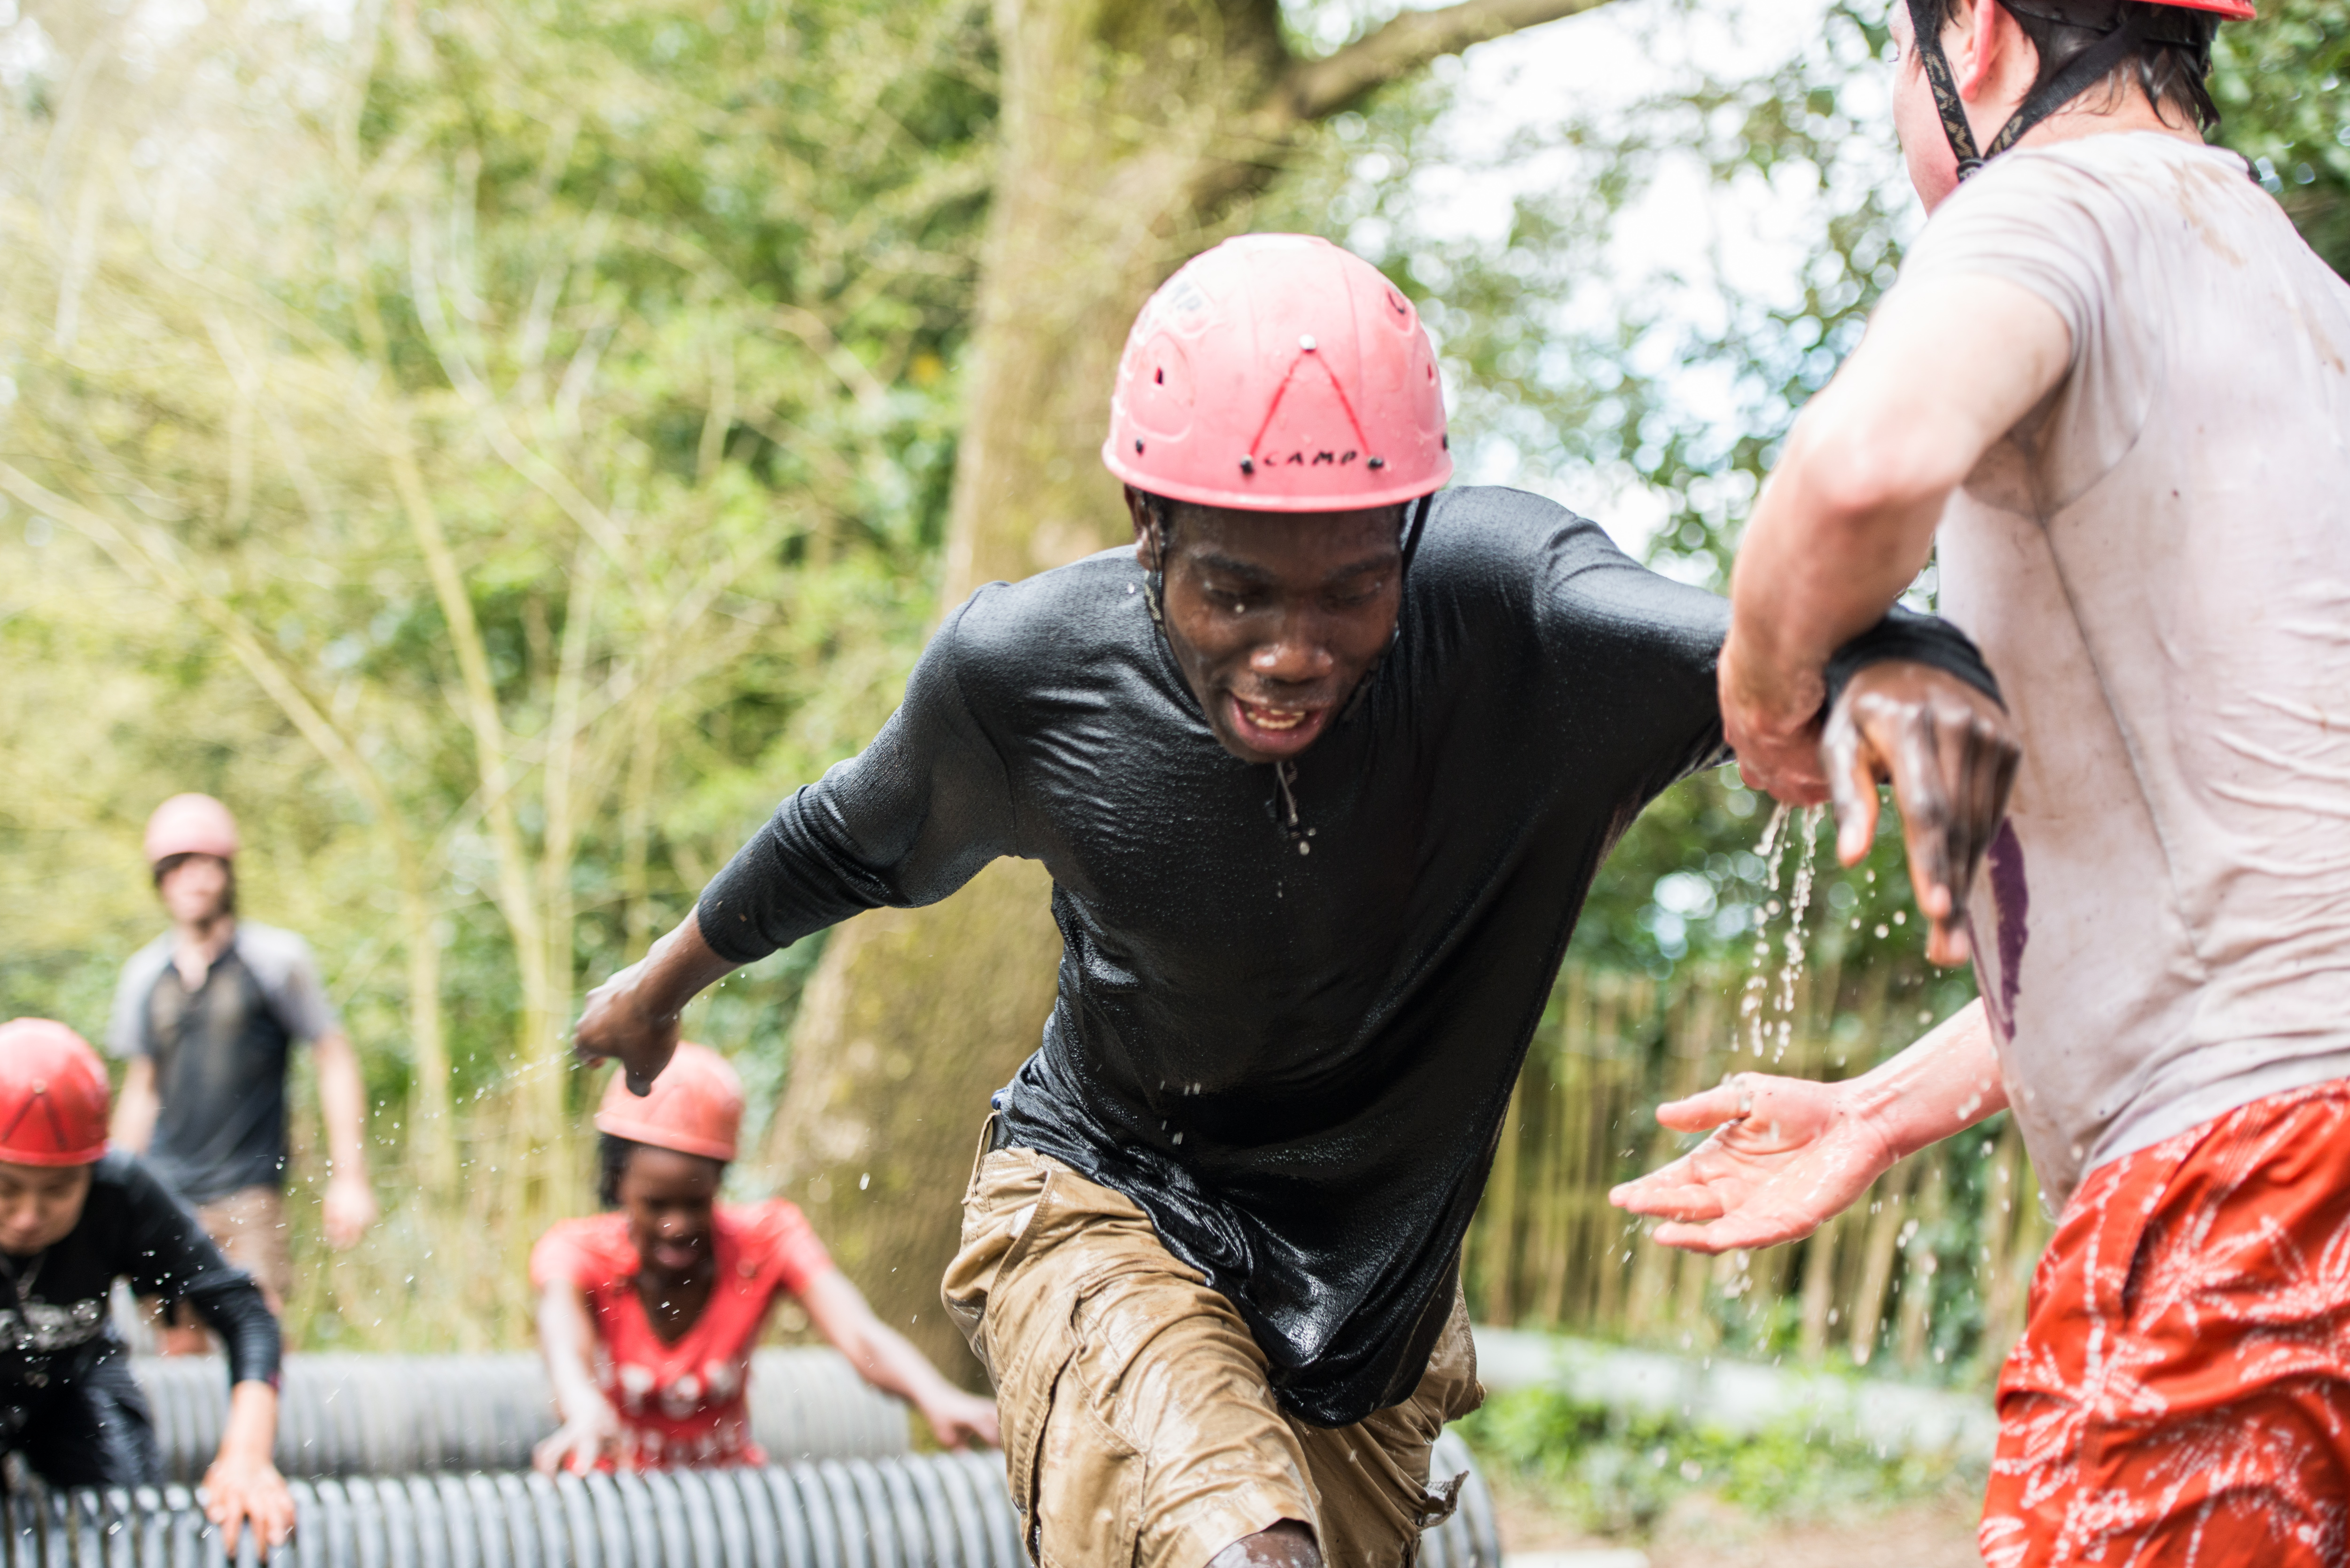 explorer-obstacle-course-6-jpg